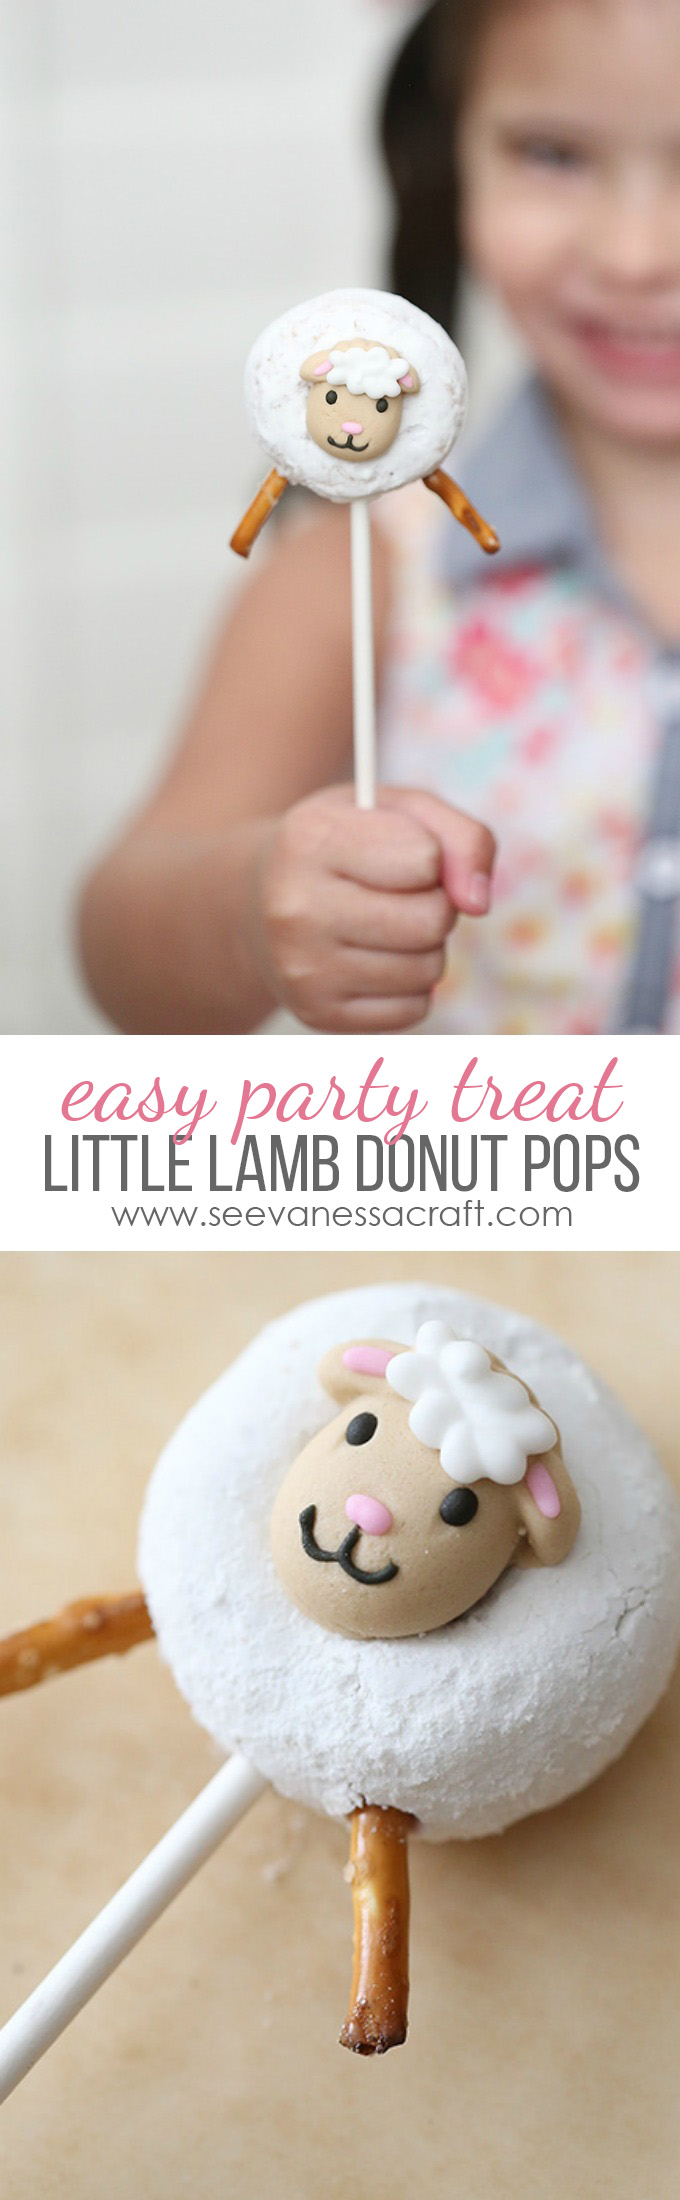 Little Lamb Donut Pops copy